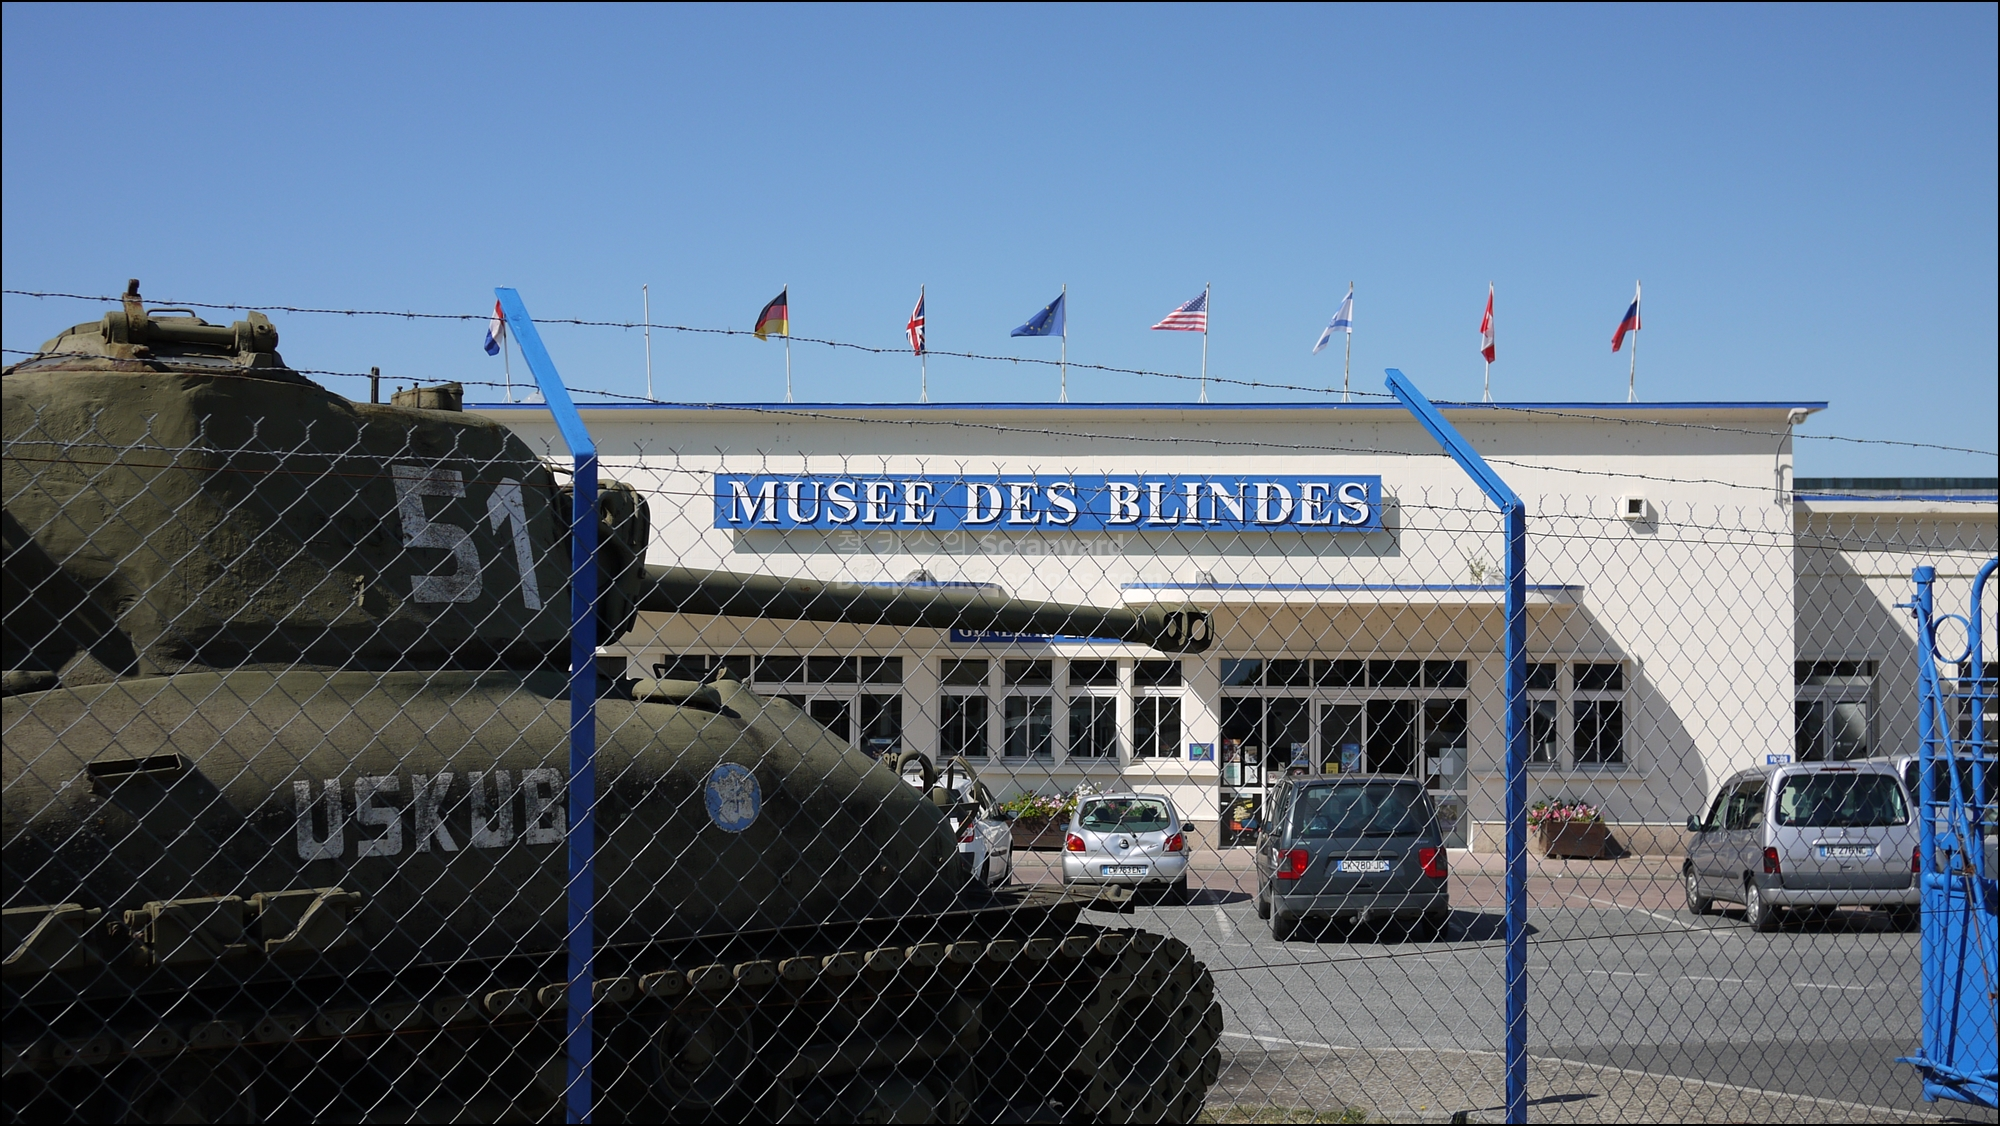 Musee des blindes(Tank Museum)